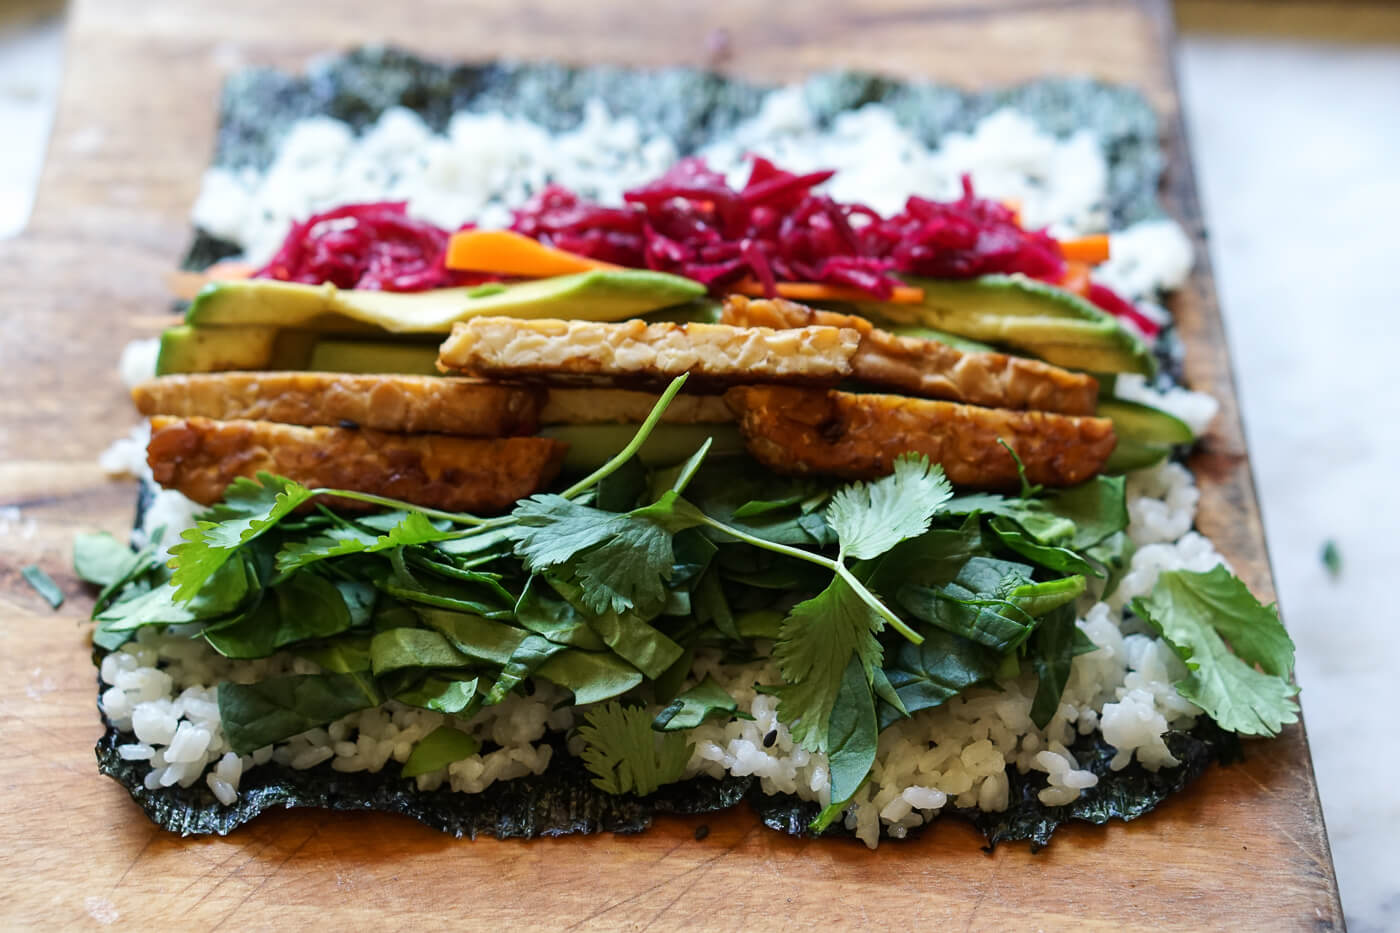 Sushi burrito fillings are placed on top of nori and rice.